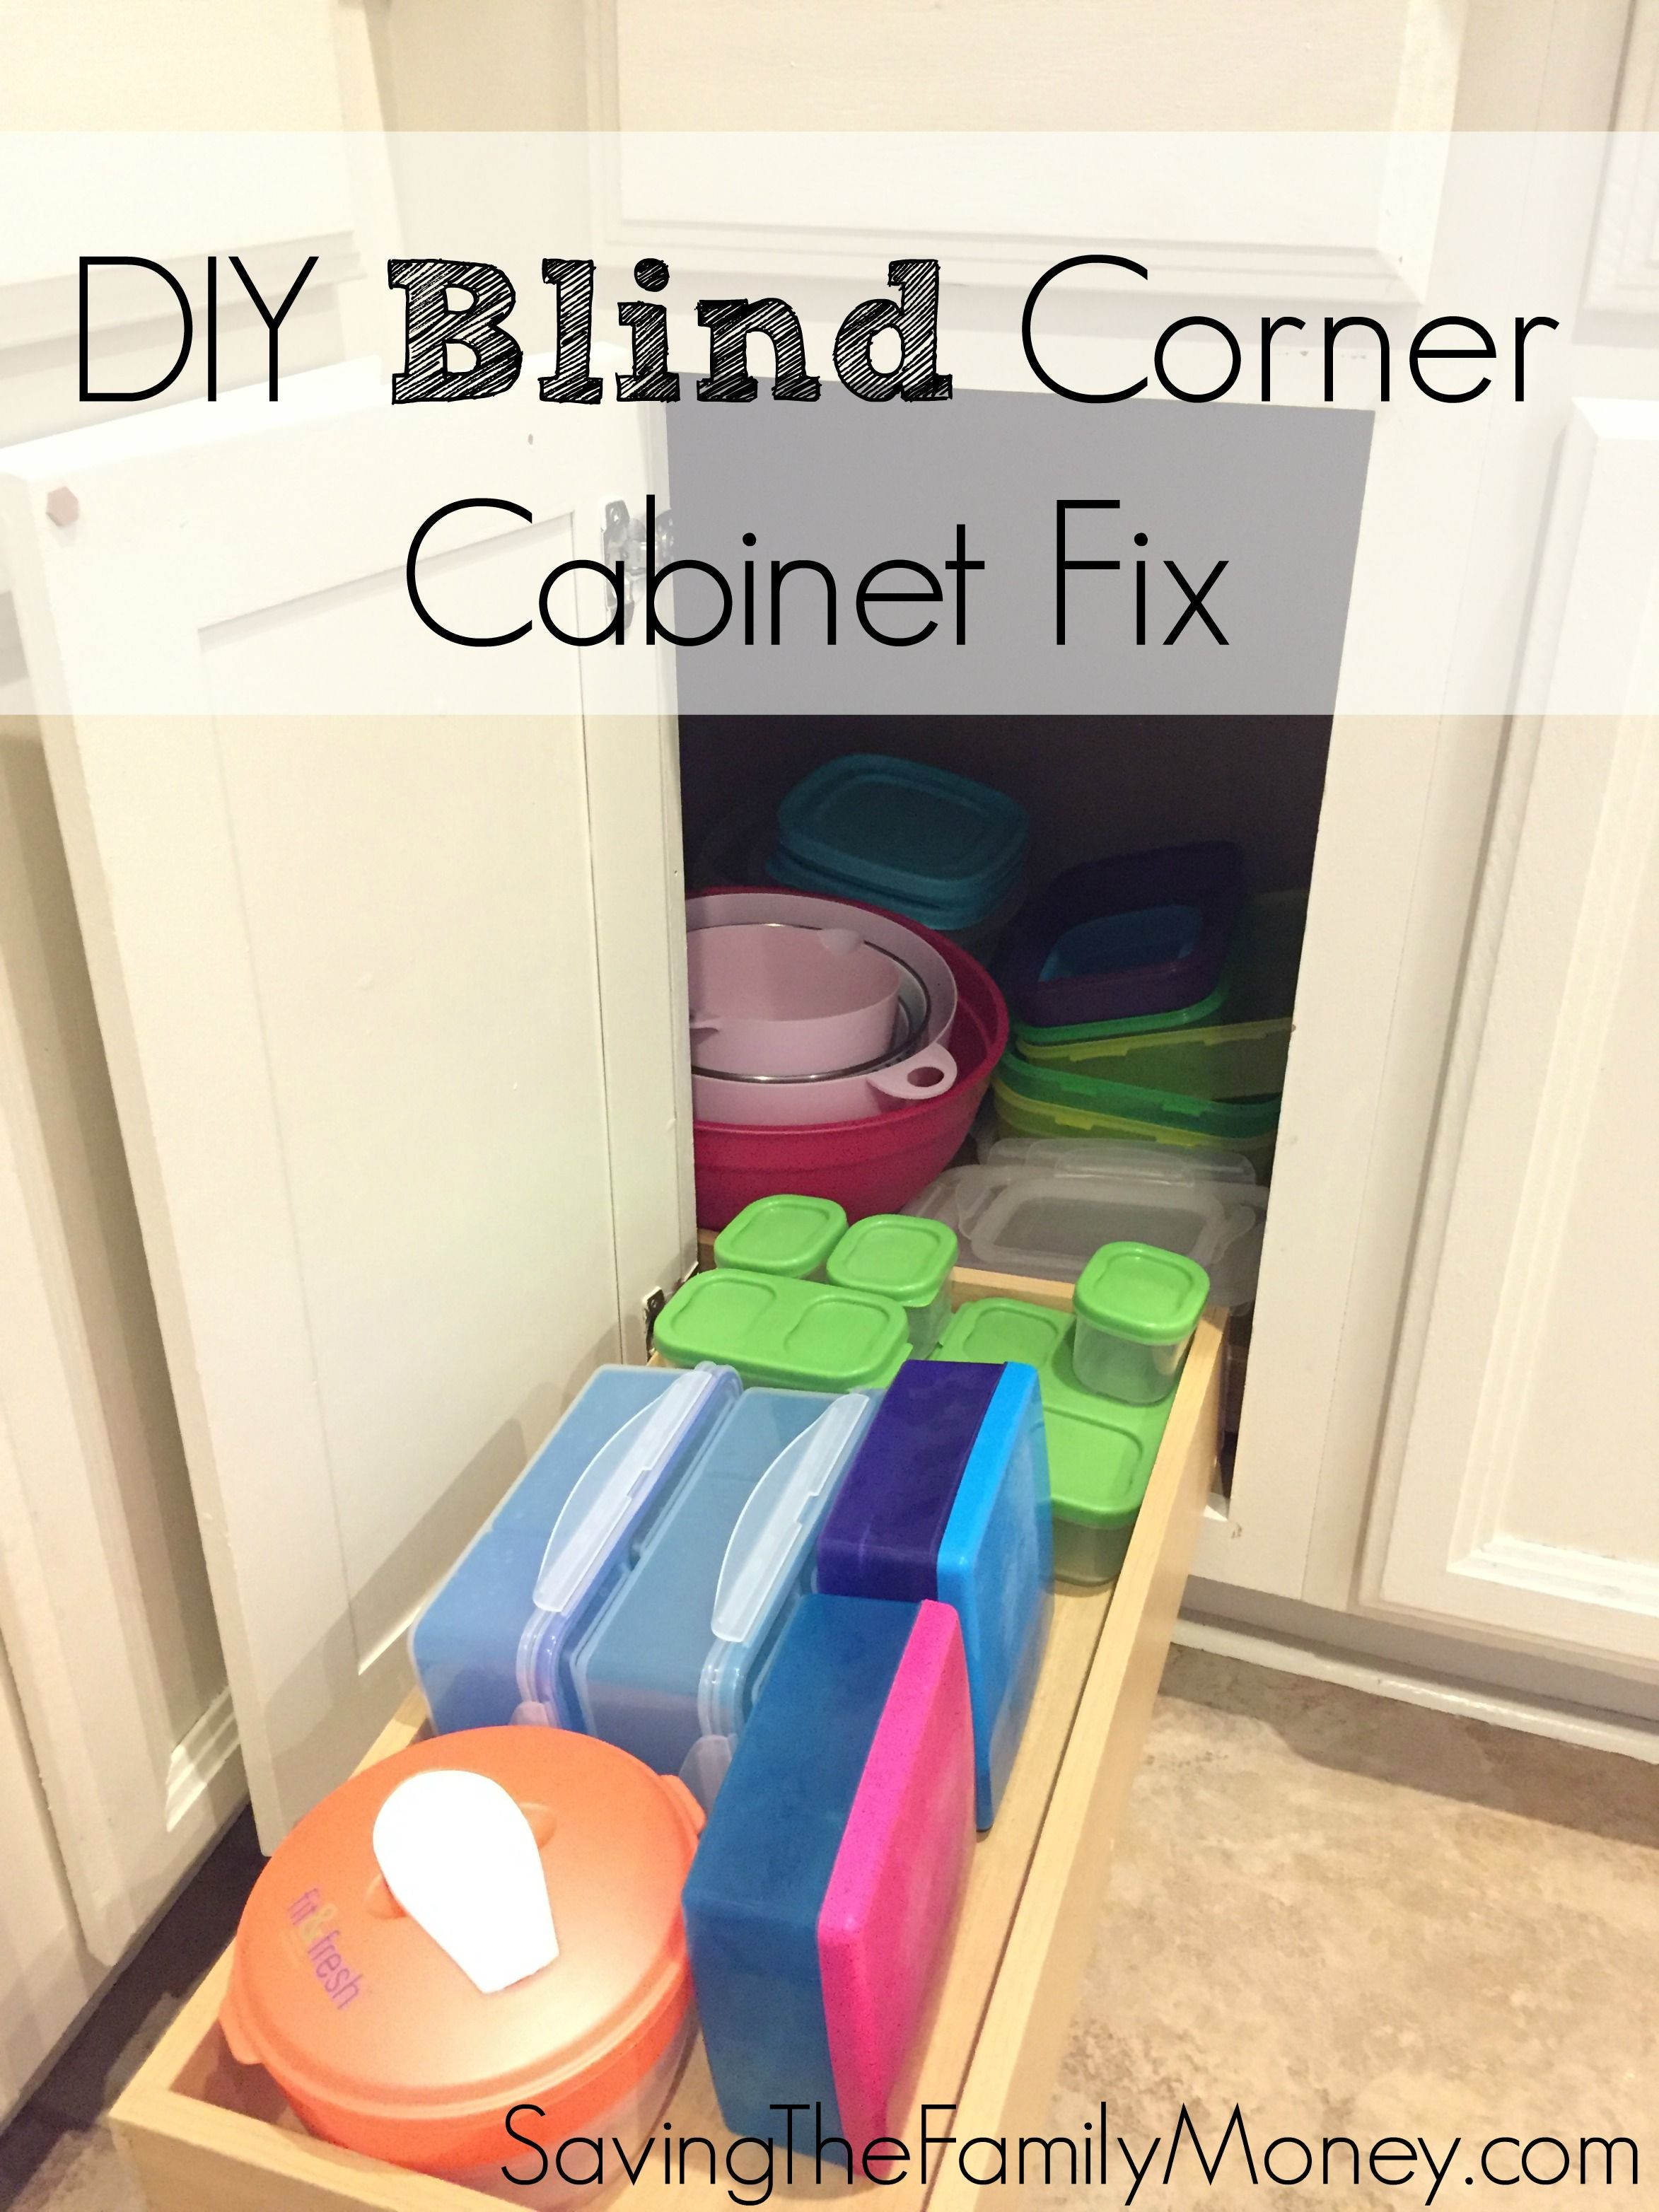 DIY Blind Corner Cabinet Fix #Kitchen | Best Of Saving The Family ...